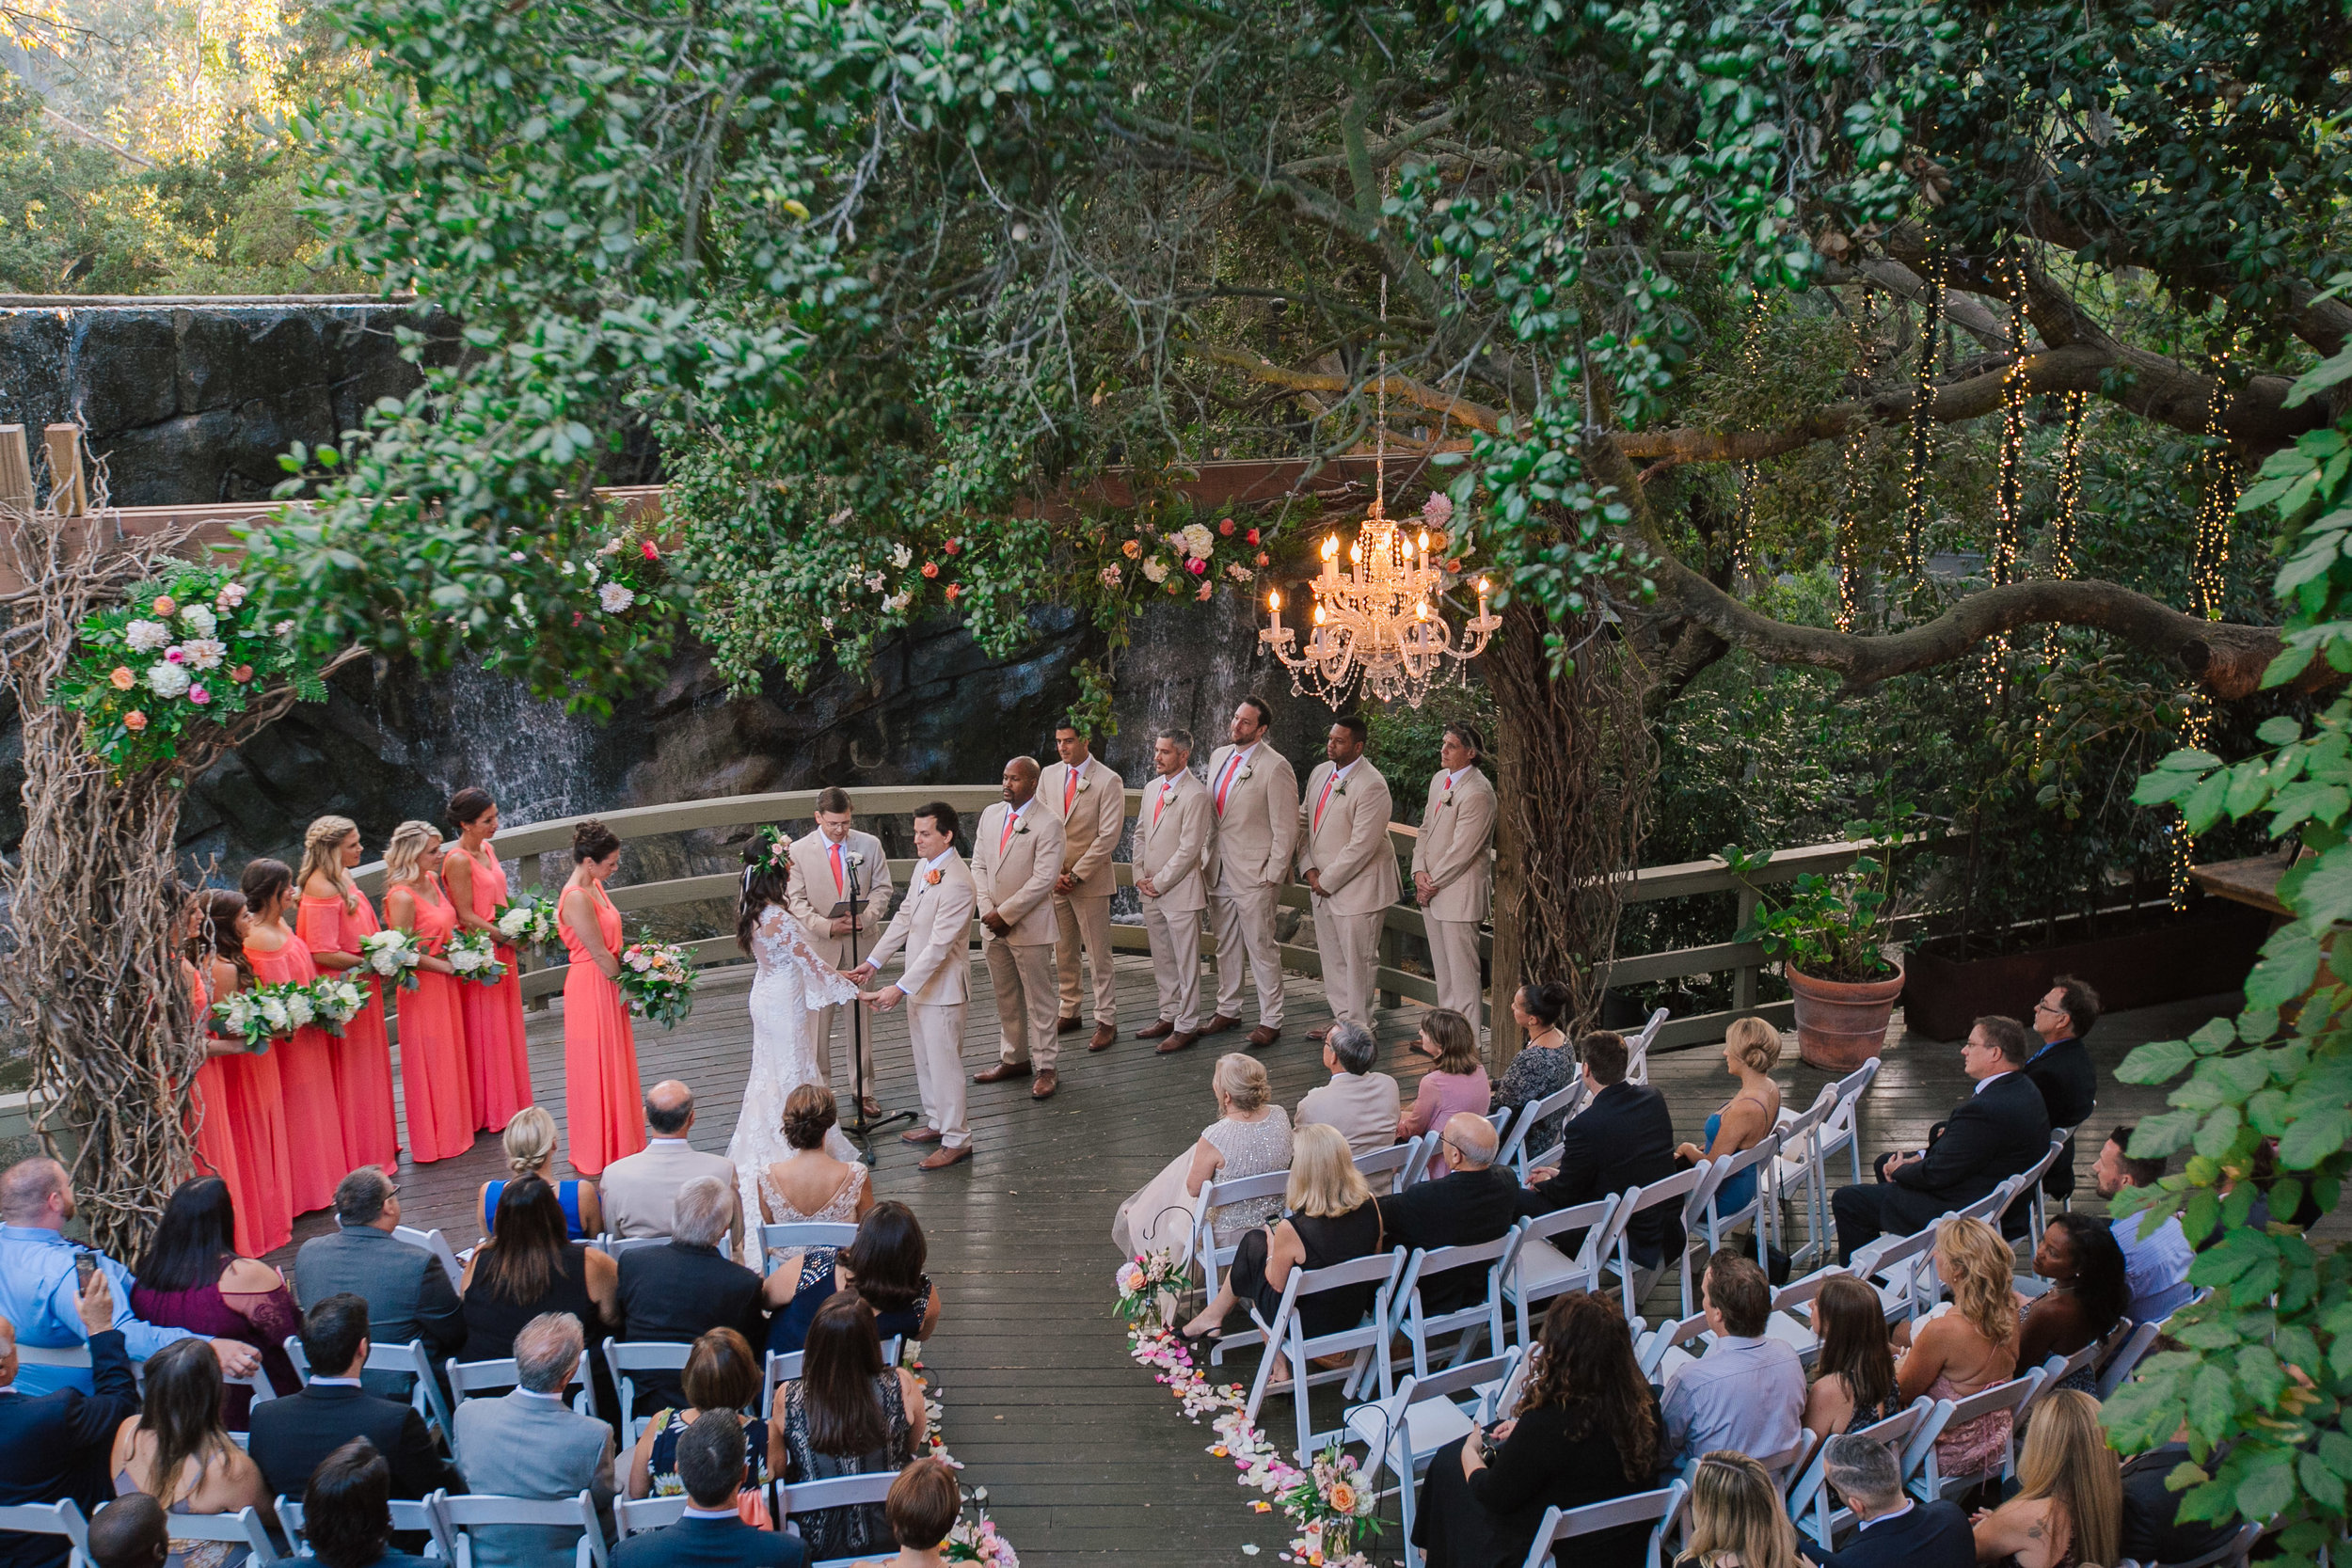 calamigos-ranch-wedding.jpg